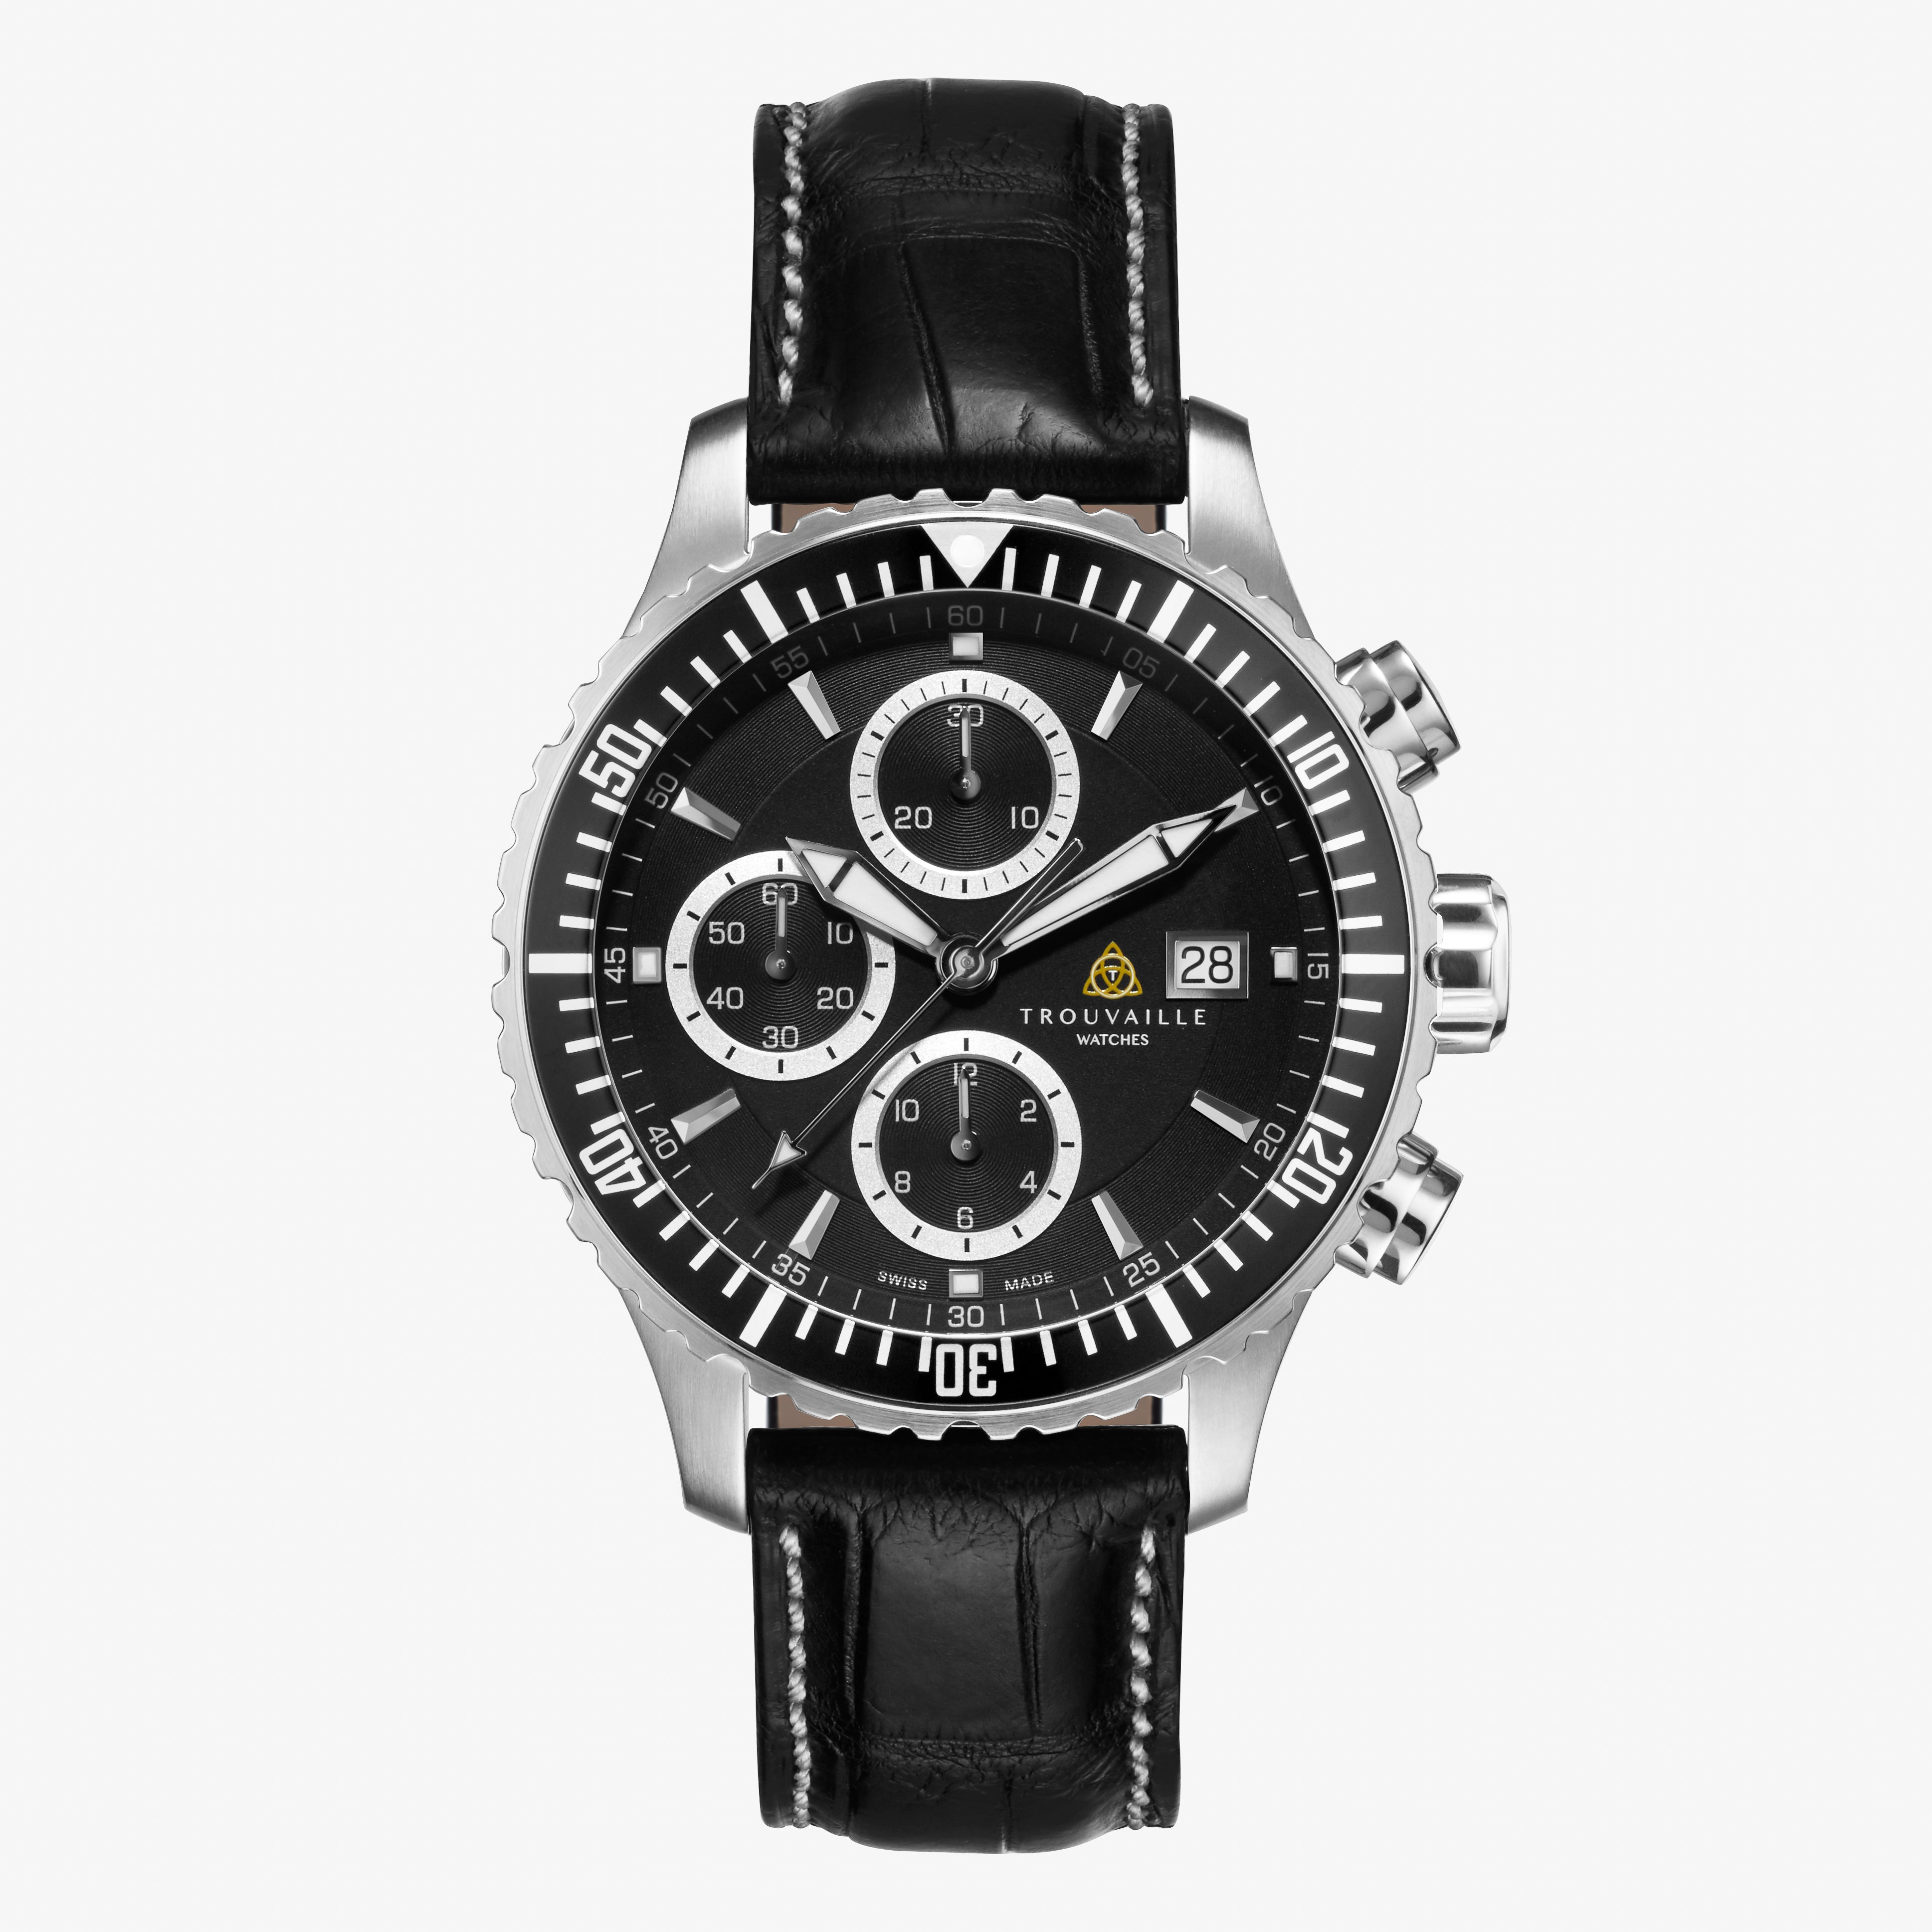 top shop malaysia best bottom multi watch crocodile black watches leather color price lazada contemporary function strap calf casual in genuine nylon